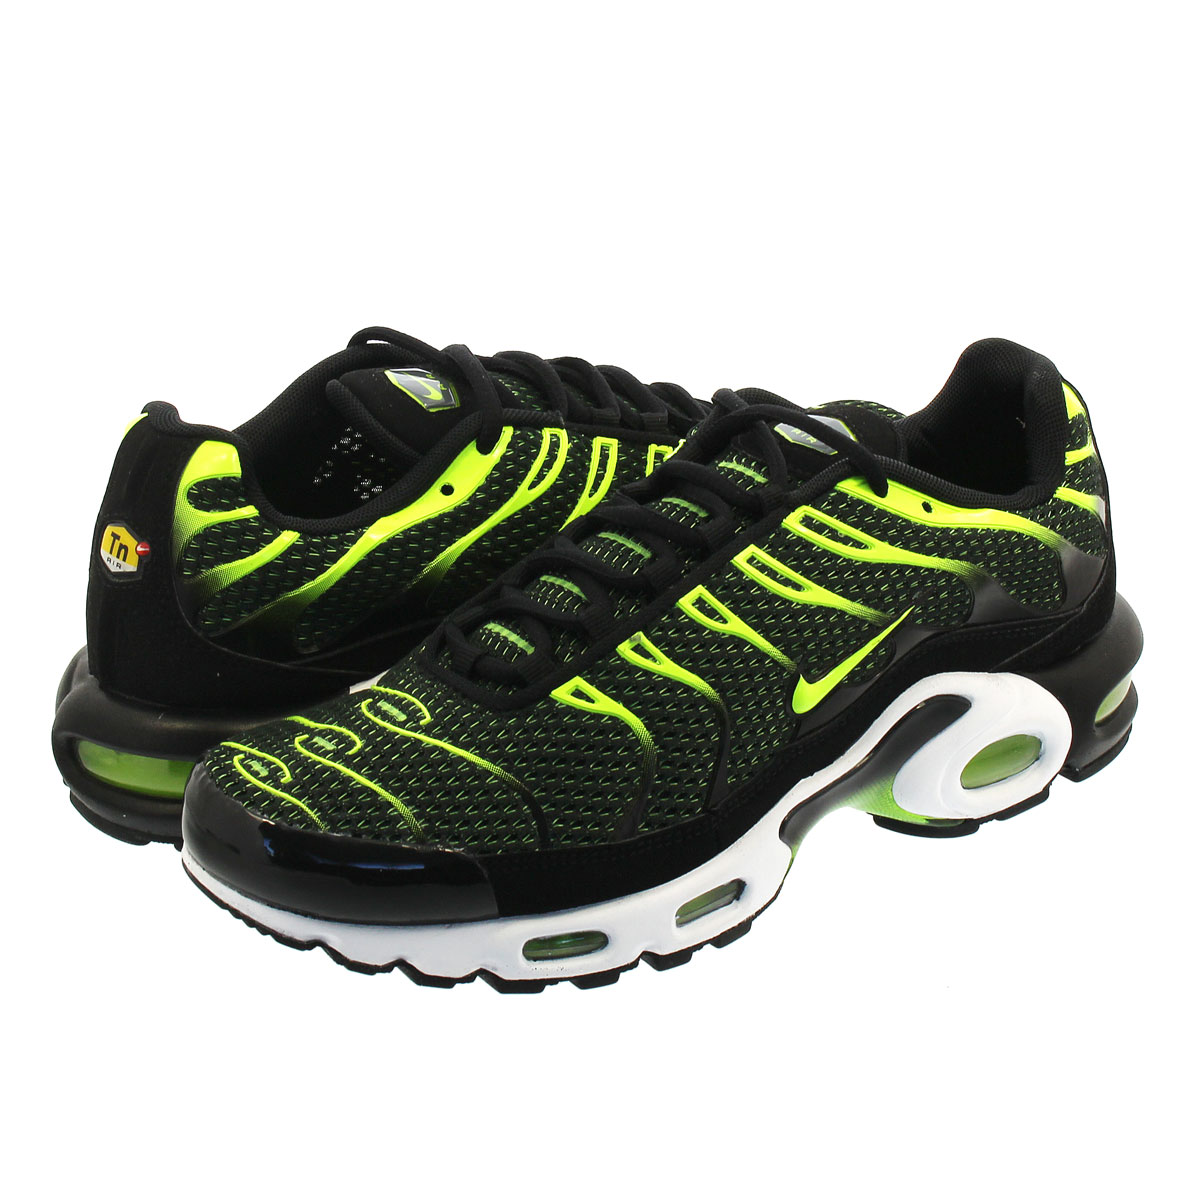 SELECT SHOP LOWTEX  NIKE AIR MAX PLUS Kie Ney AMAX plus BLACK VOLT ... 10996404e